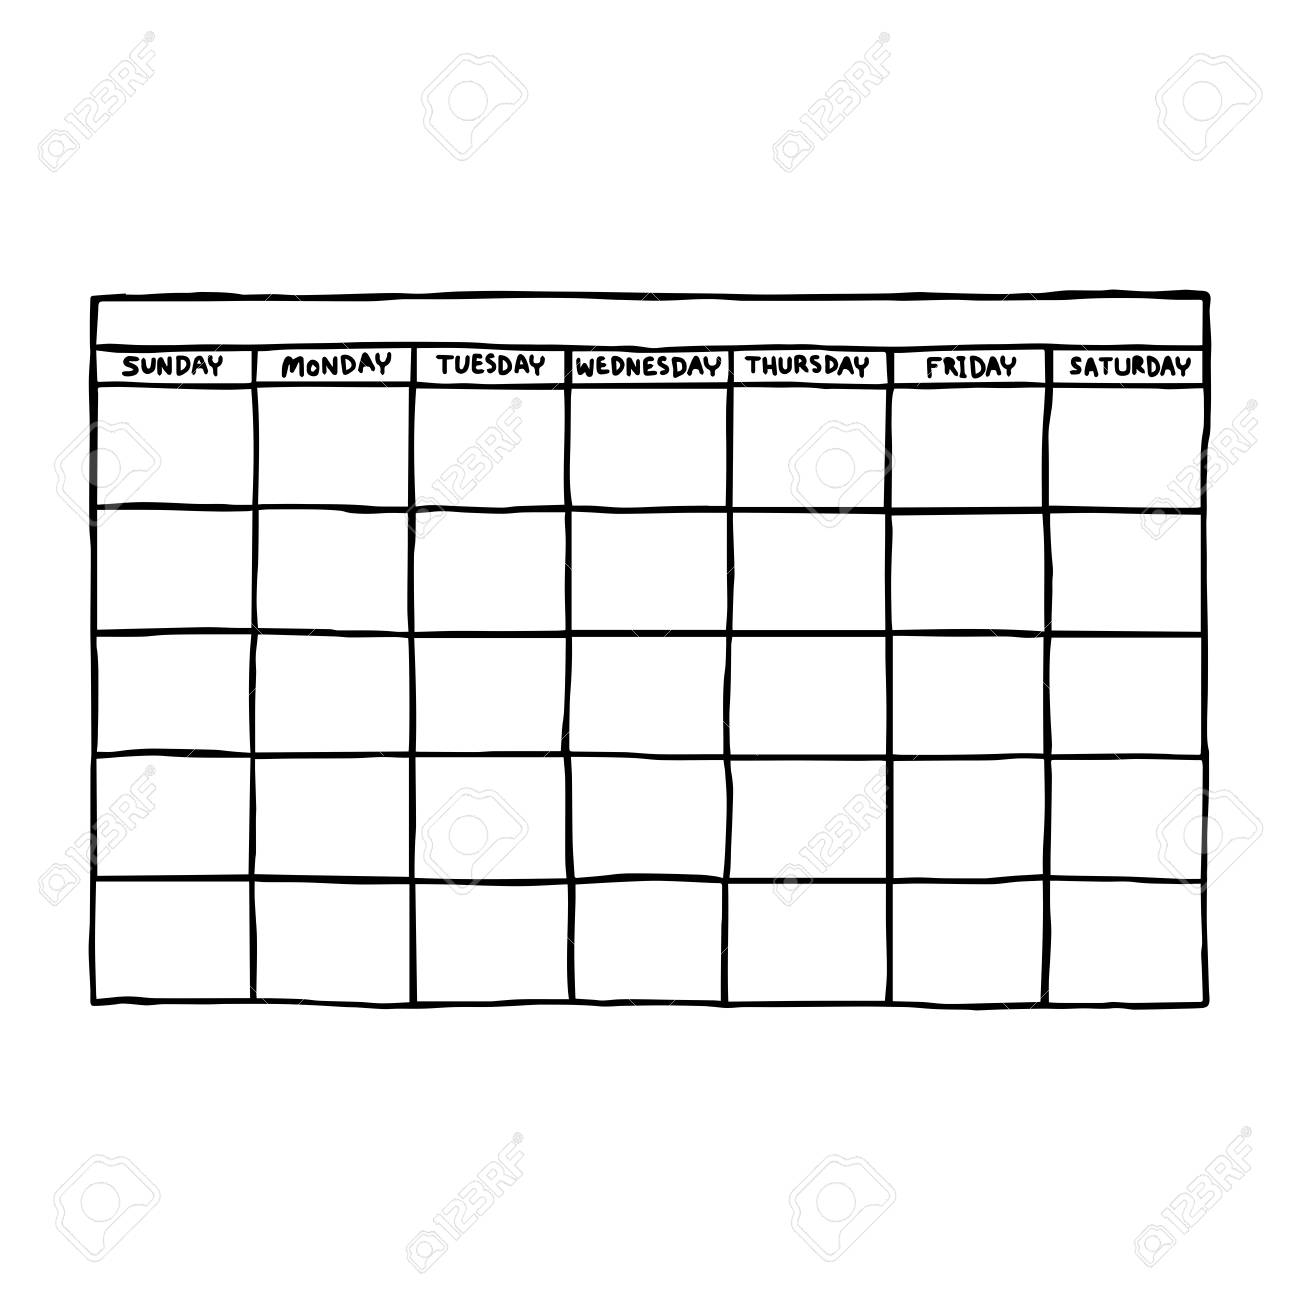 Blank Calendar - Vector Illustration Sketch Hand Drawn With Black.. regarding Need A Blank Calendar With Lines